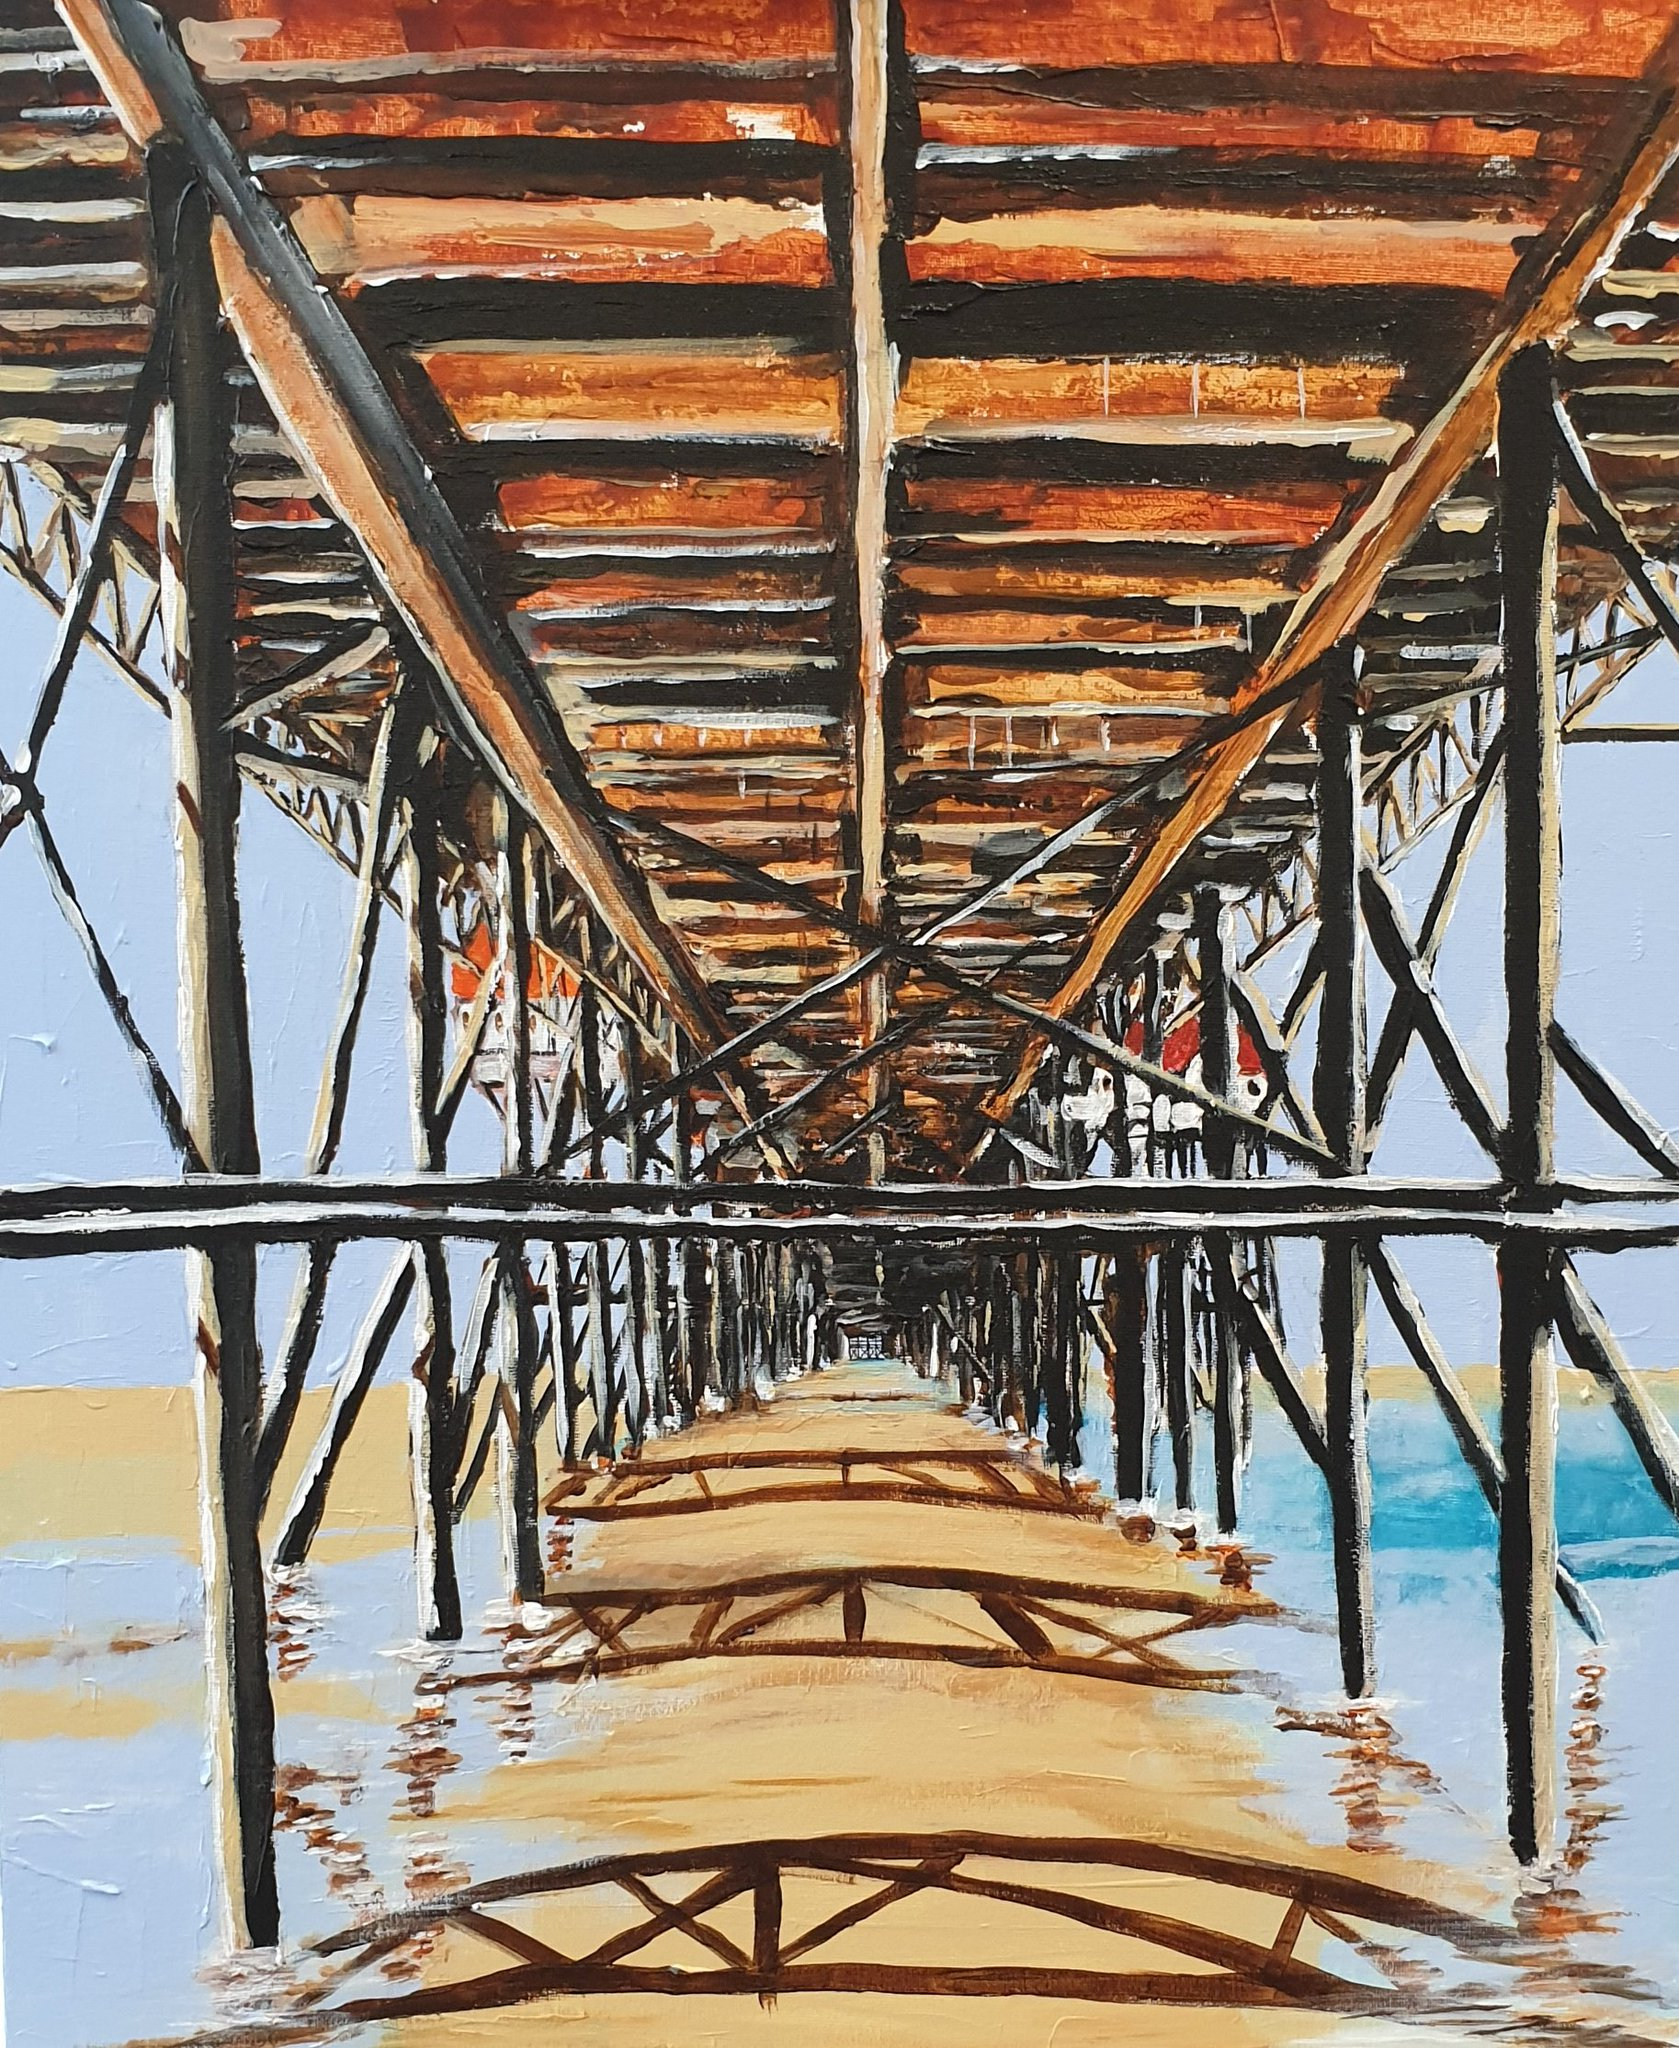 Under the North Pier. Acrylic painting. @visitBlackpool @BpoolCouncil https://t.co/zuaVR49lFp